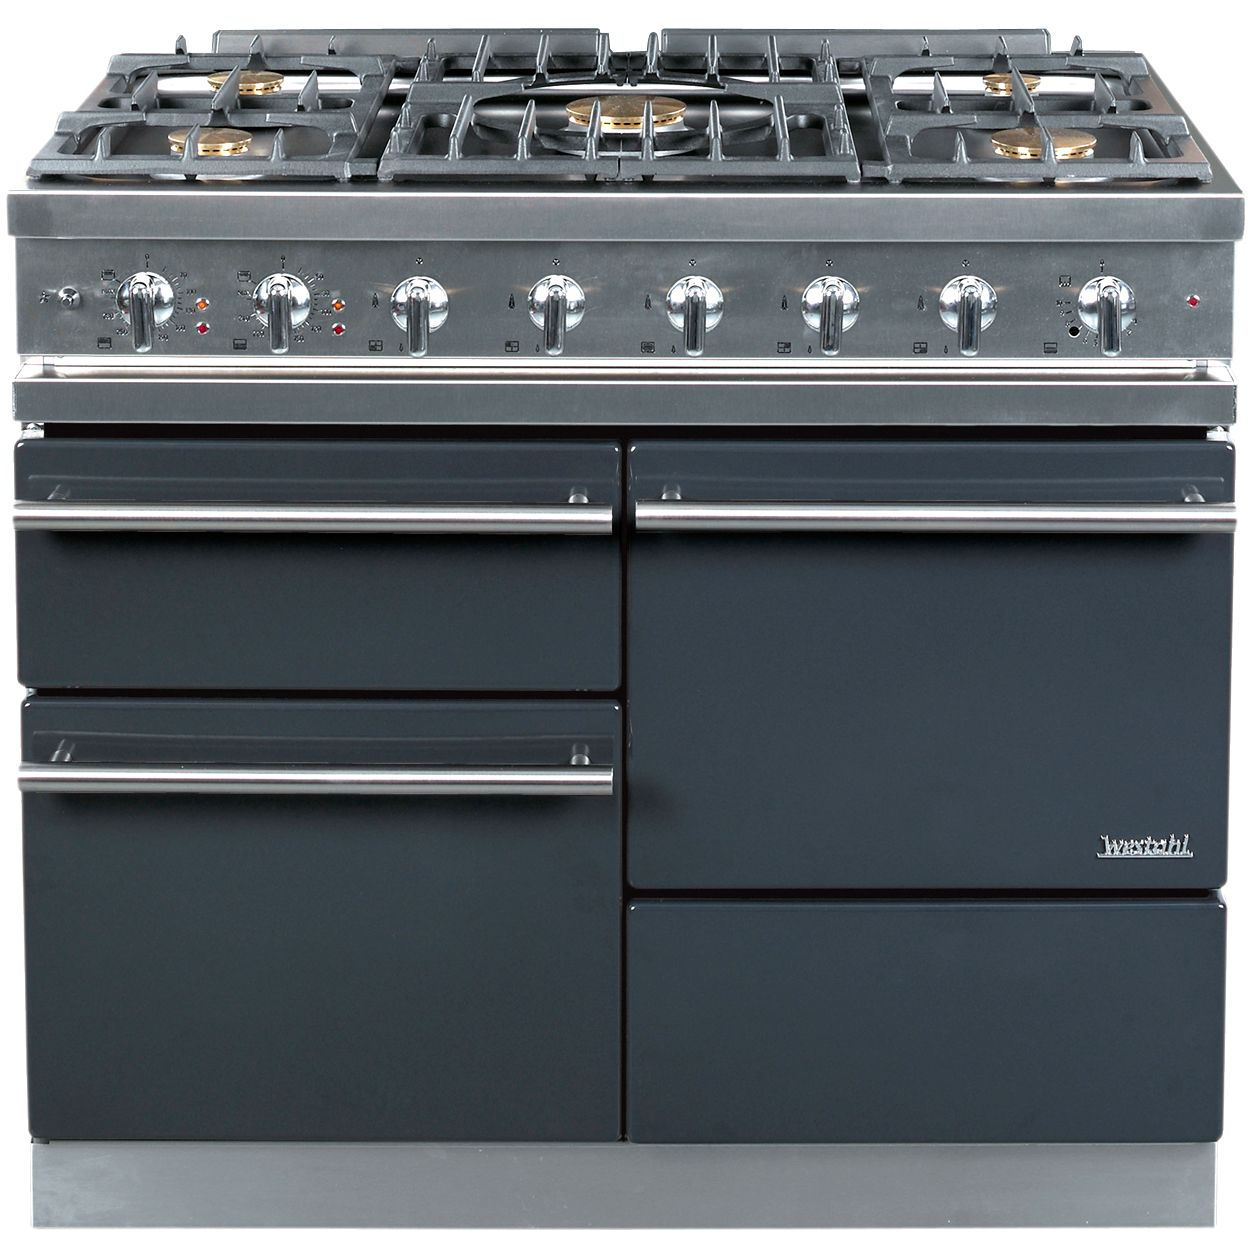 Westahl Macon WG1053GECT Dual Fuel Cooker, Anthracite at John Lewis